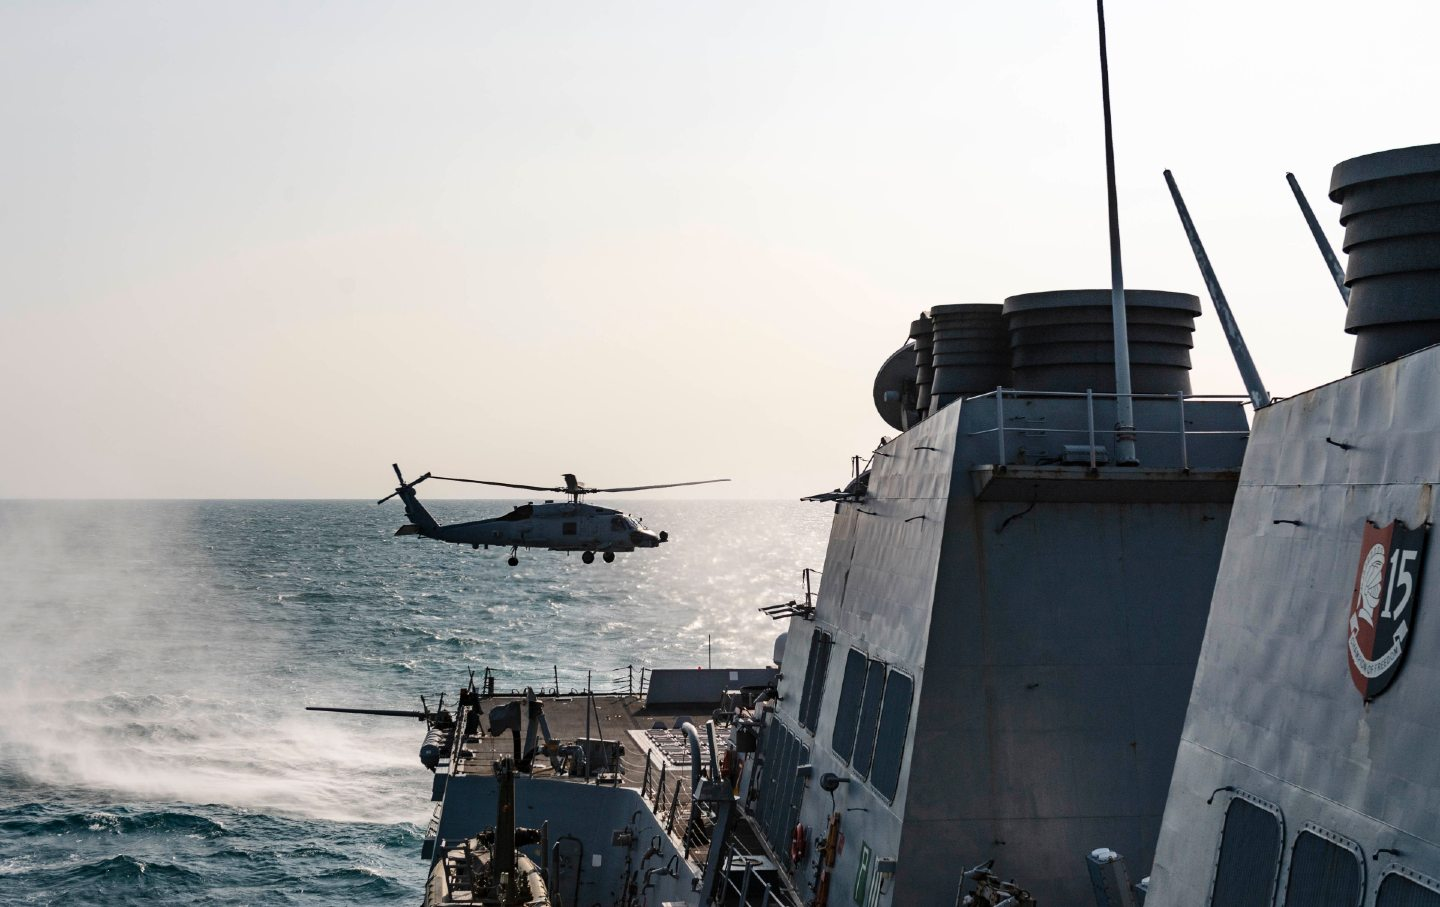 Taiwan Strait Helicopter